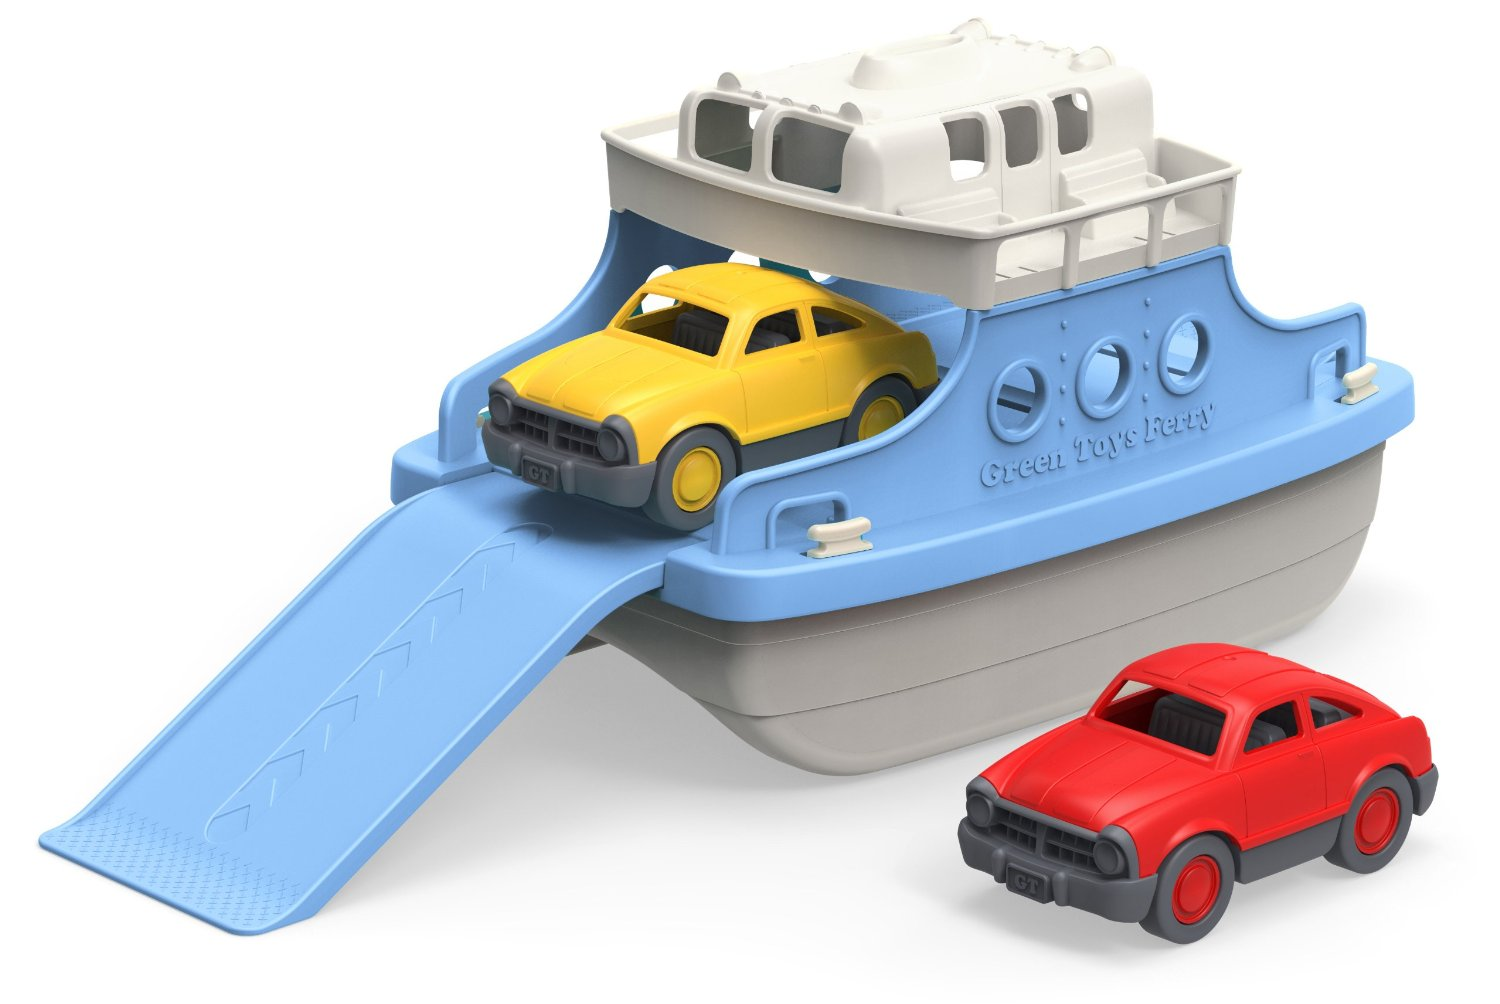 Green Toys Mini Ferry Boat Toy Review - Kids Toys News